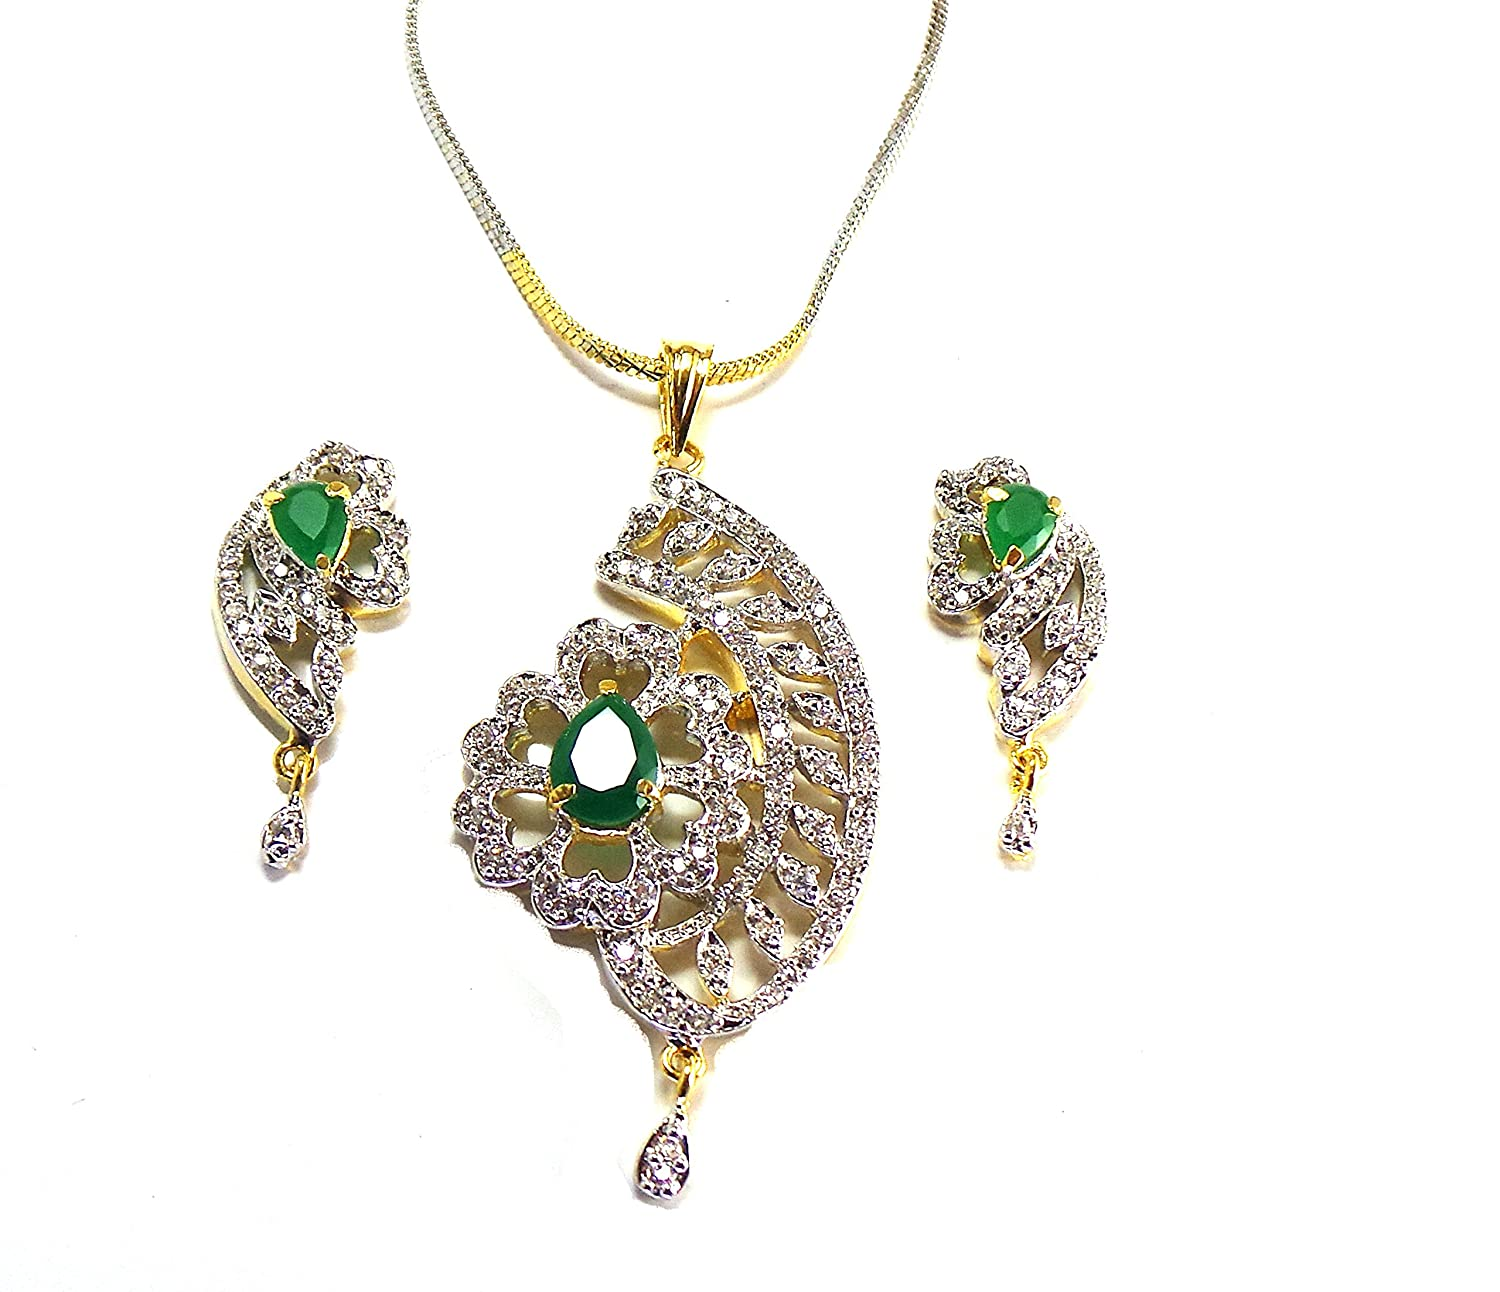 Diamond Imitation Pendant and Earrings for your Modish Look